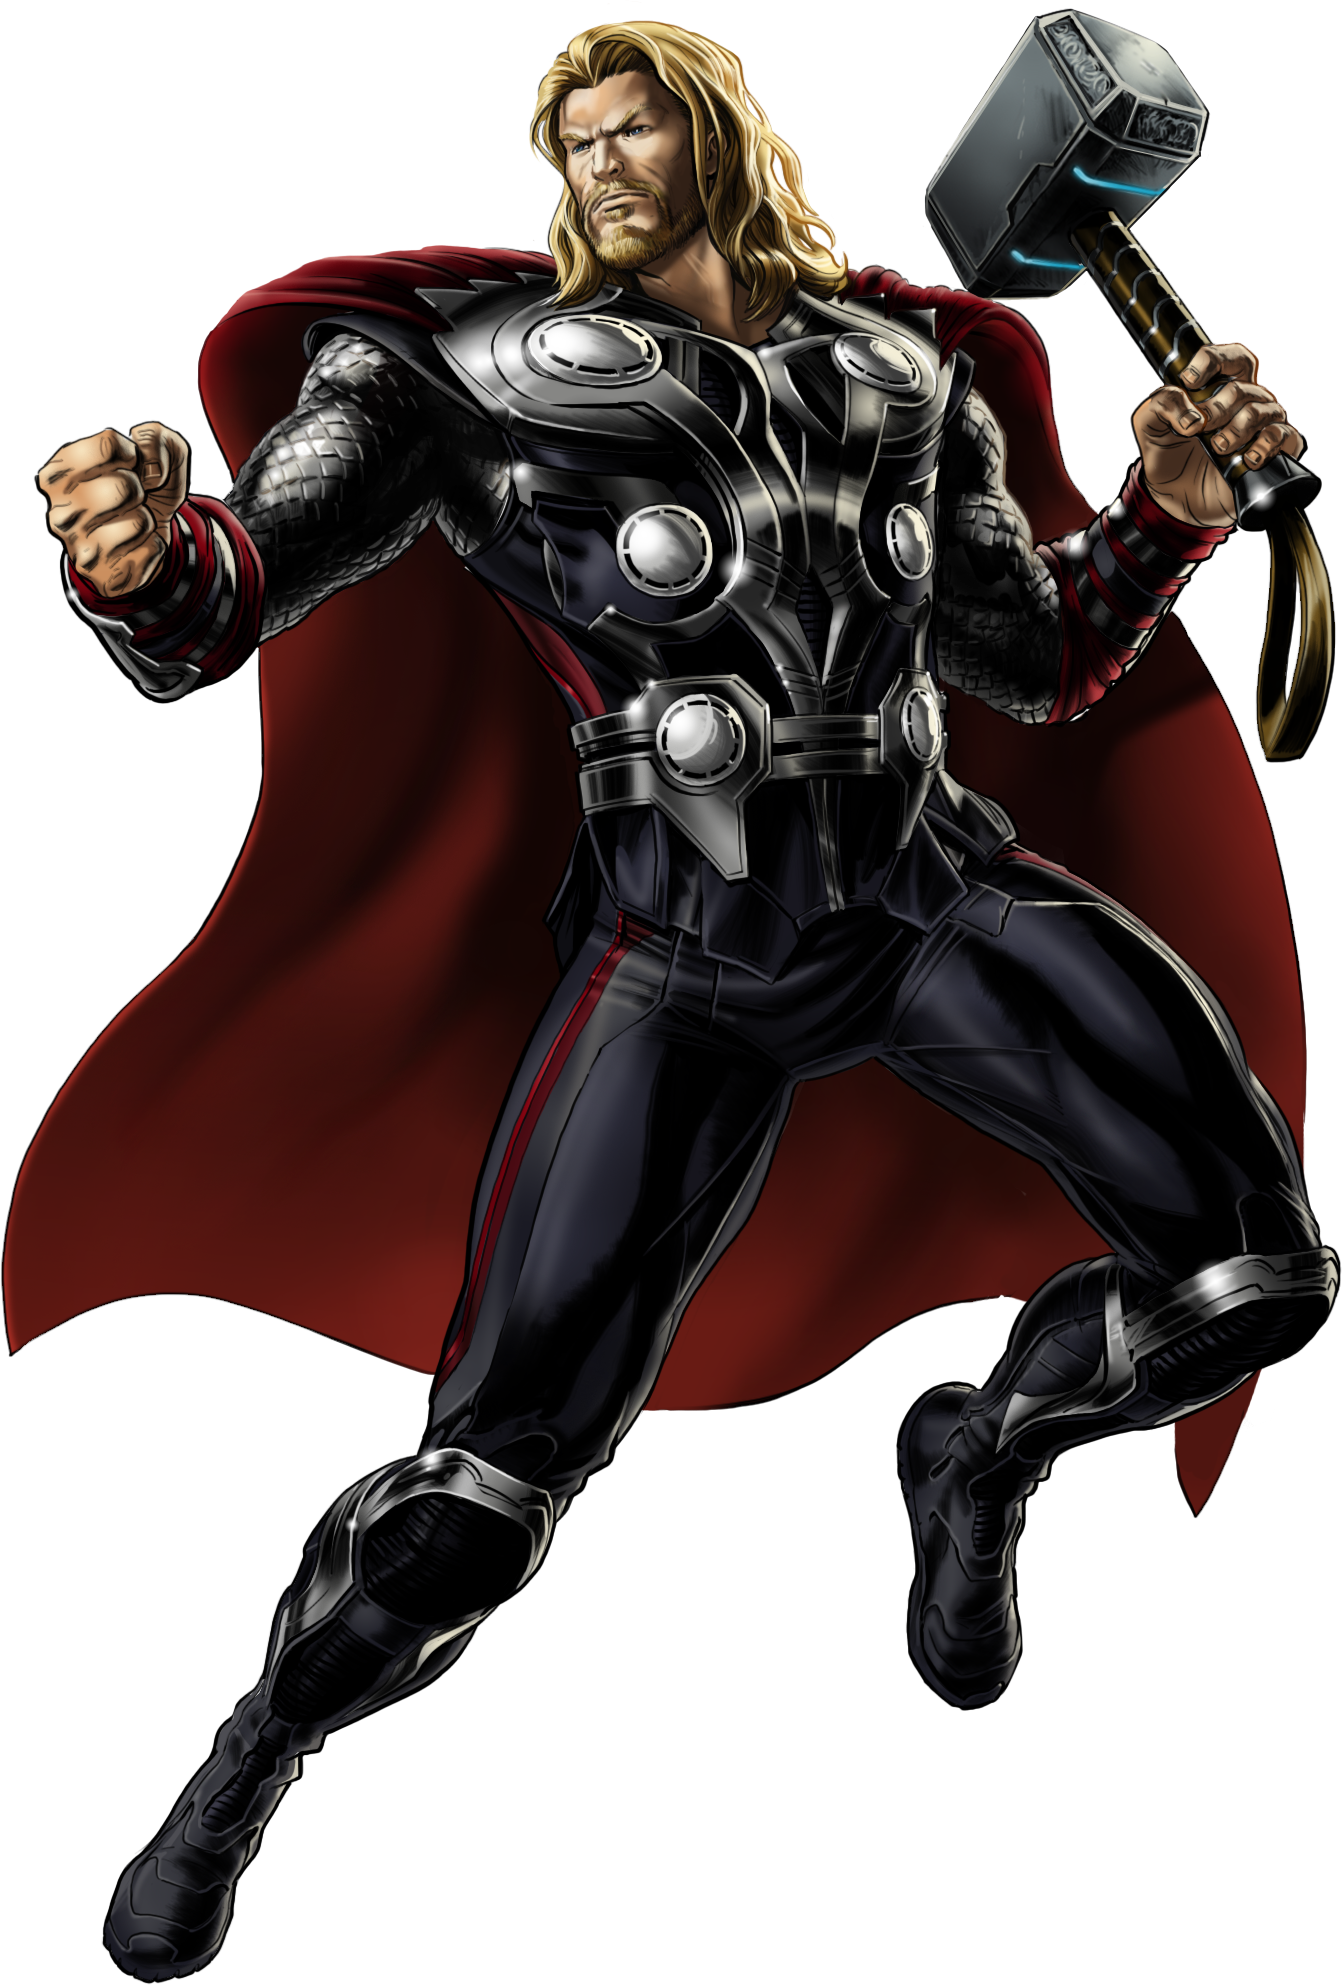 Thor marvel png. Image avengers right portrait